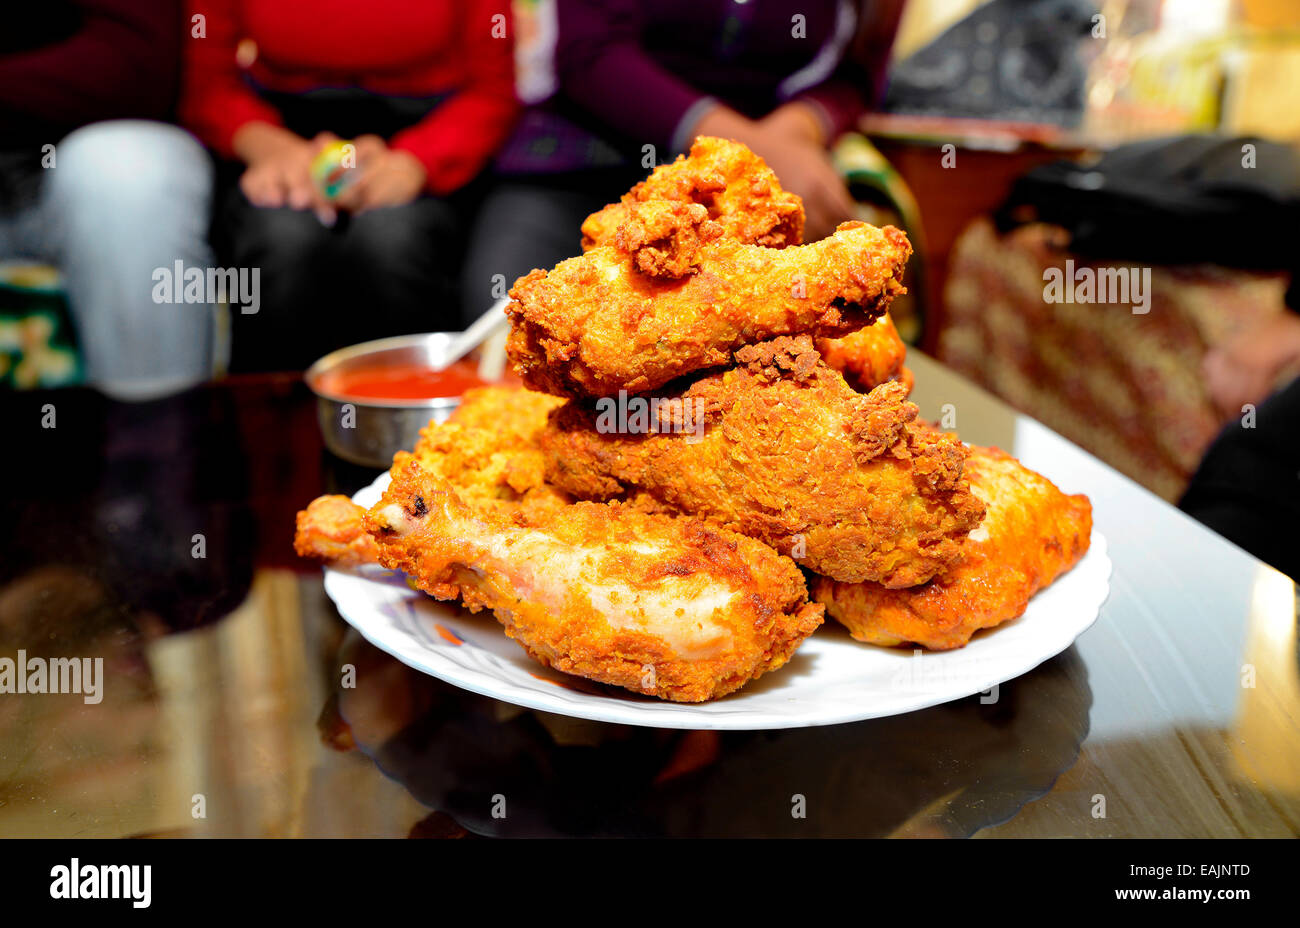 Crispy,Fried,Chicken,Gourmet,fast-food,Meat,Snack,junk-food,non-vegetarian,food,nutritious,isolated - Stock Image